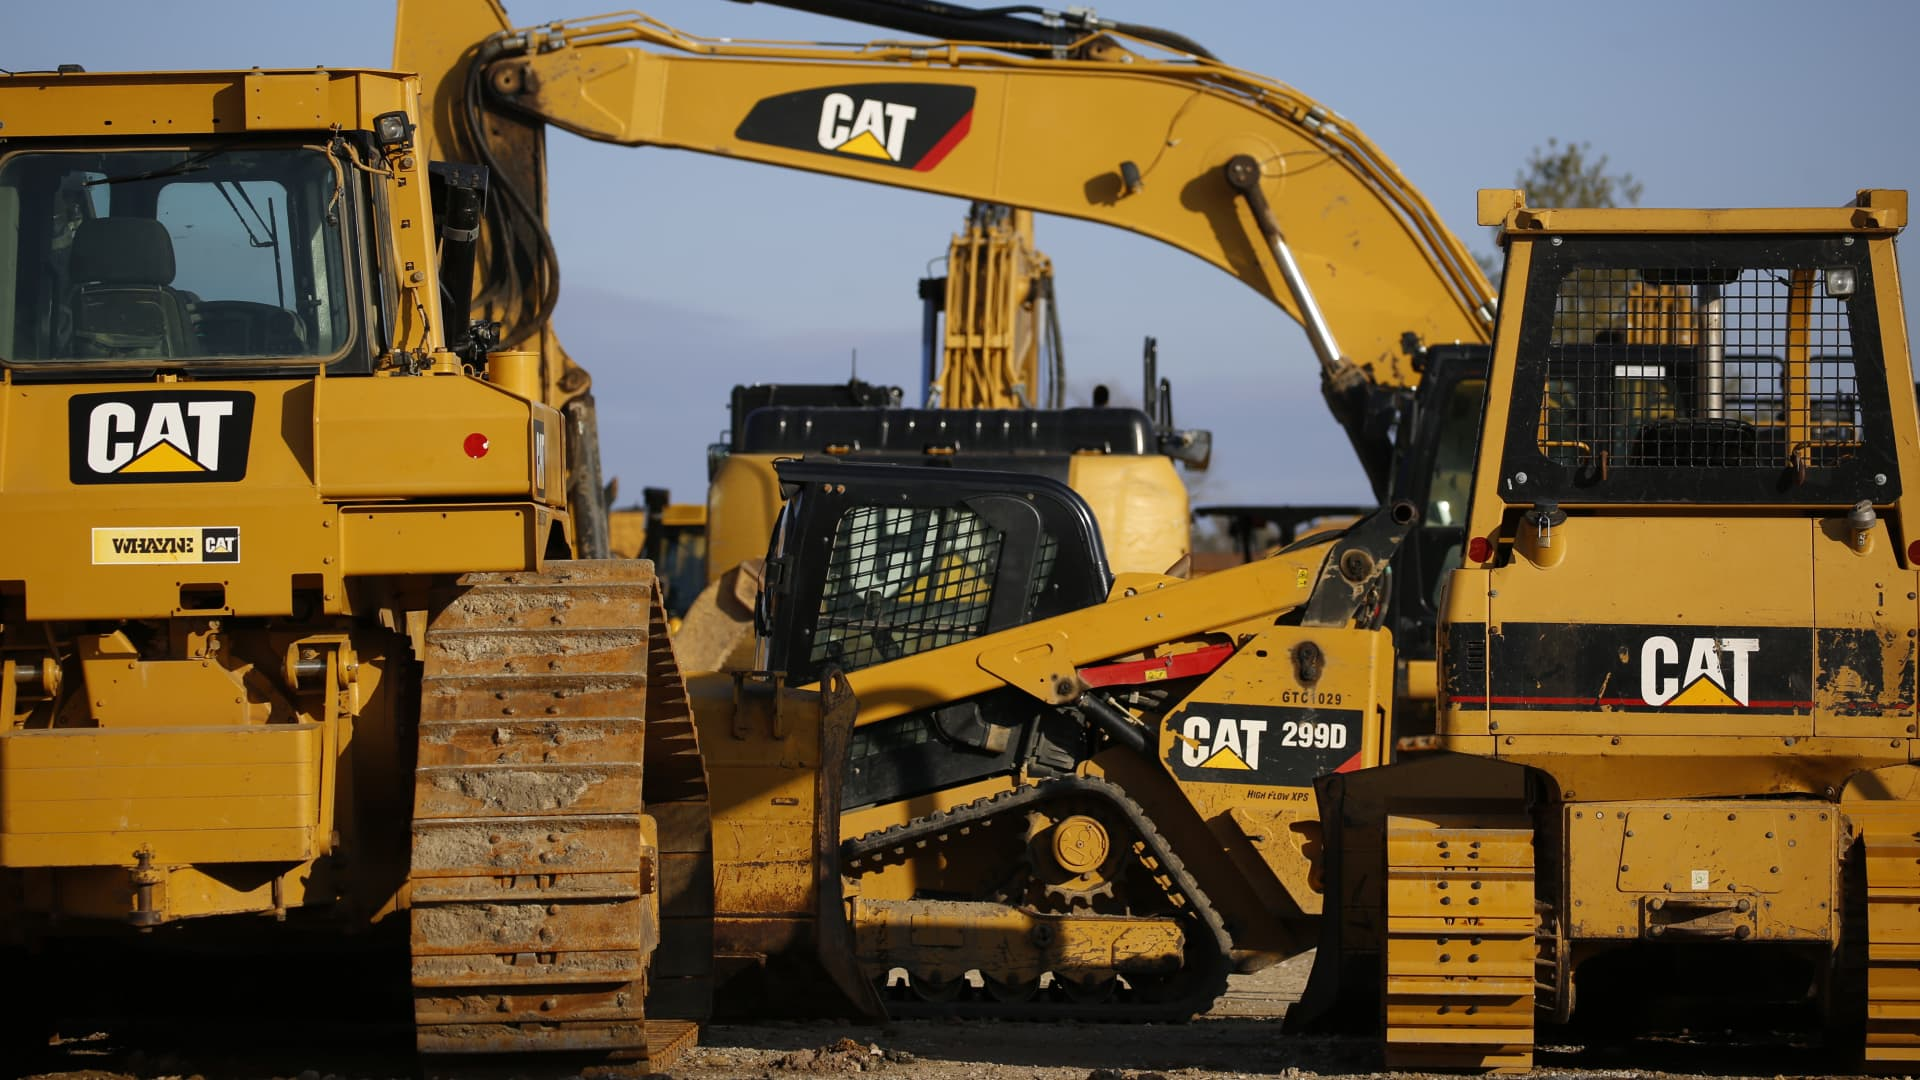 Caterpillar Inc. excavators are displayed for sale at the Whayne Supply Co. dealership in Louisville, Kentucky, U.S., on Monday, Jan. 27, 2020.